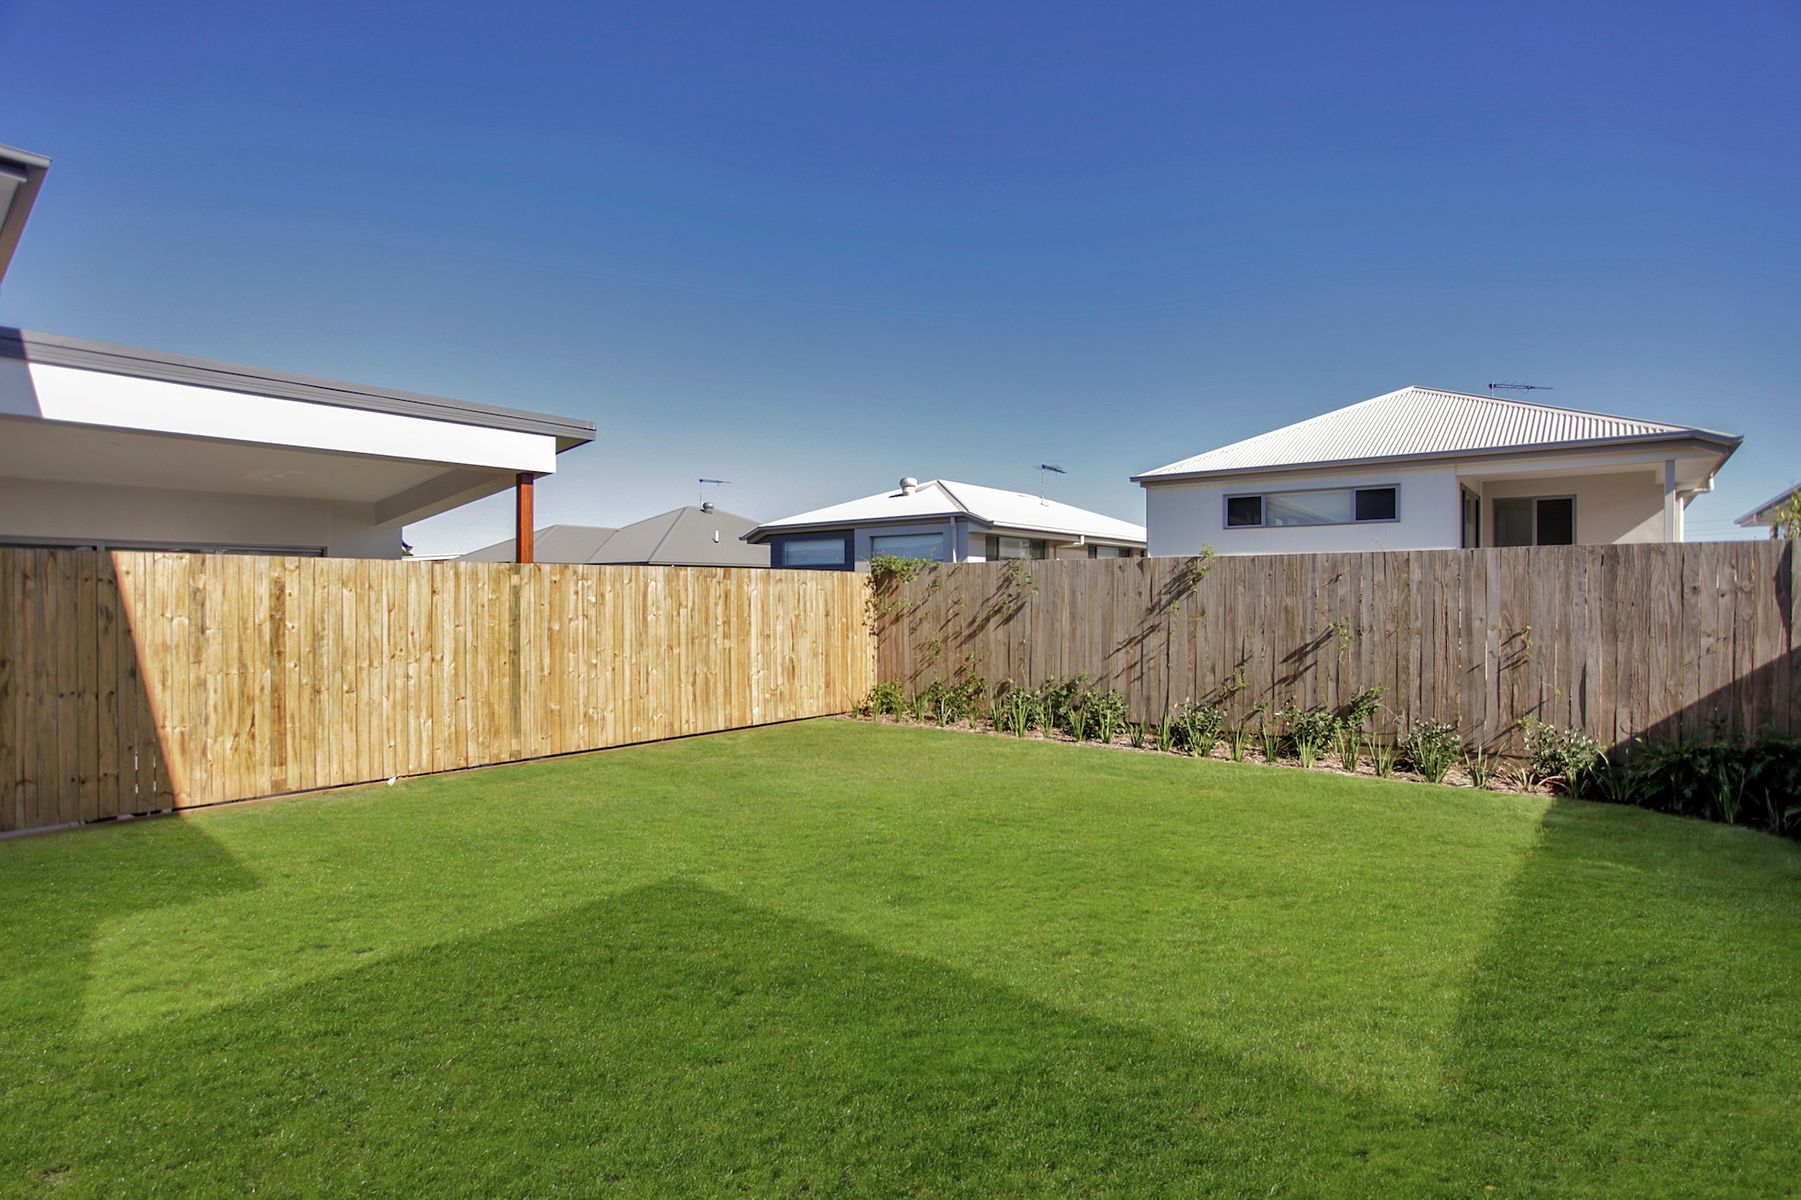 68 Hillcrest Street, Rochedale, QLD 4123